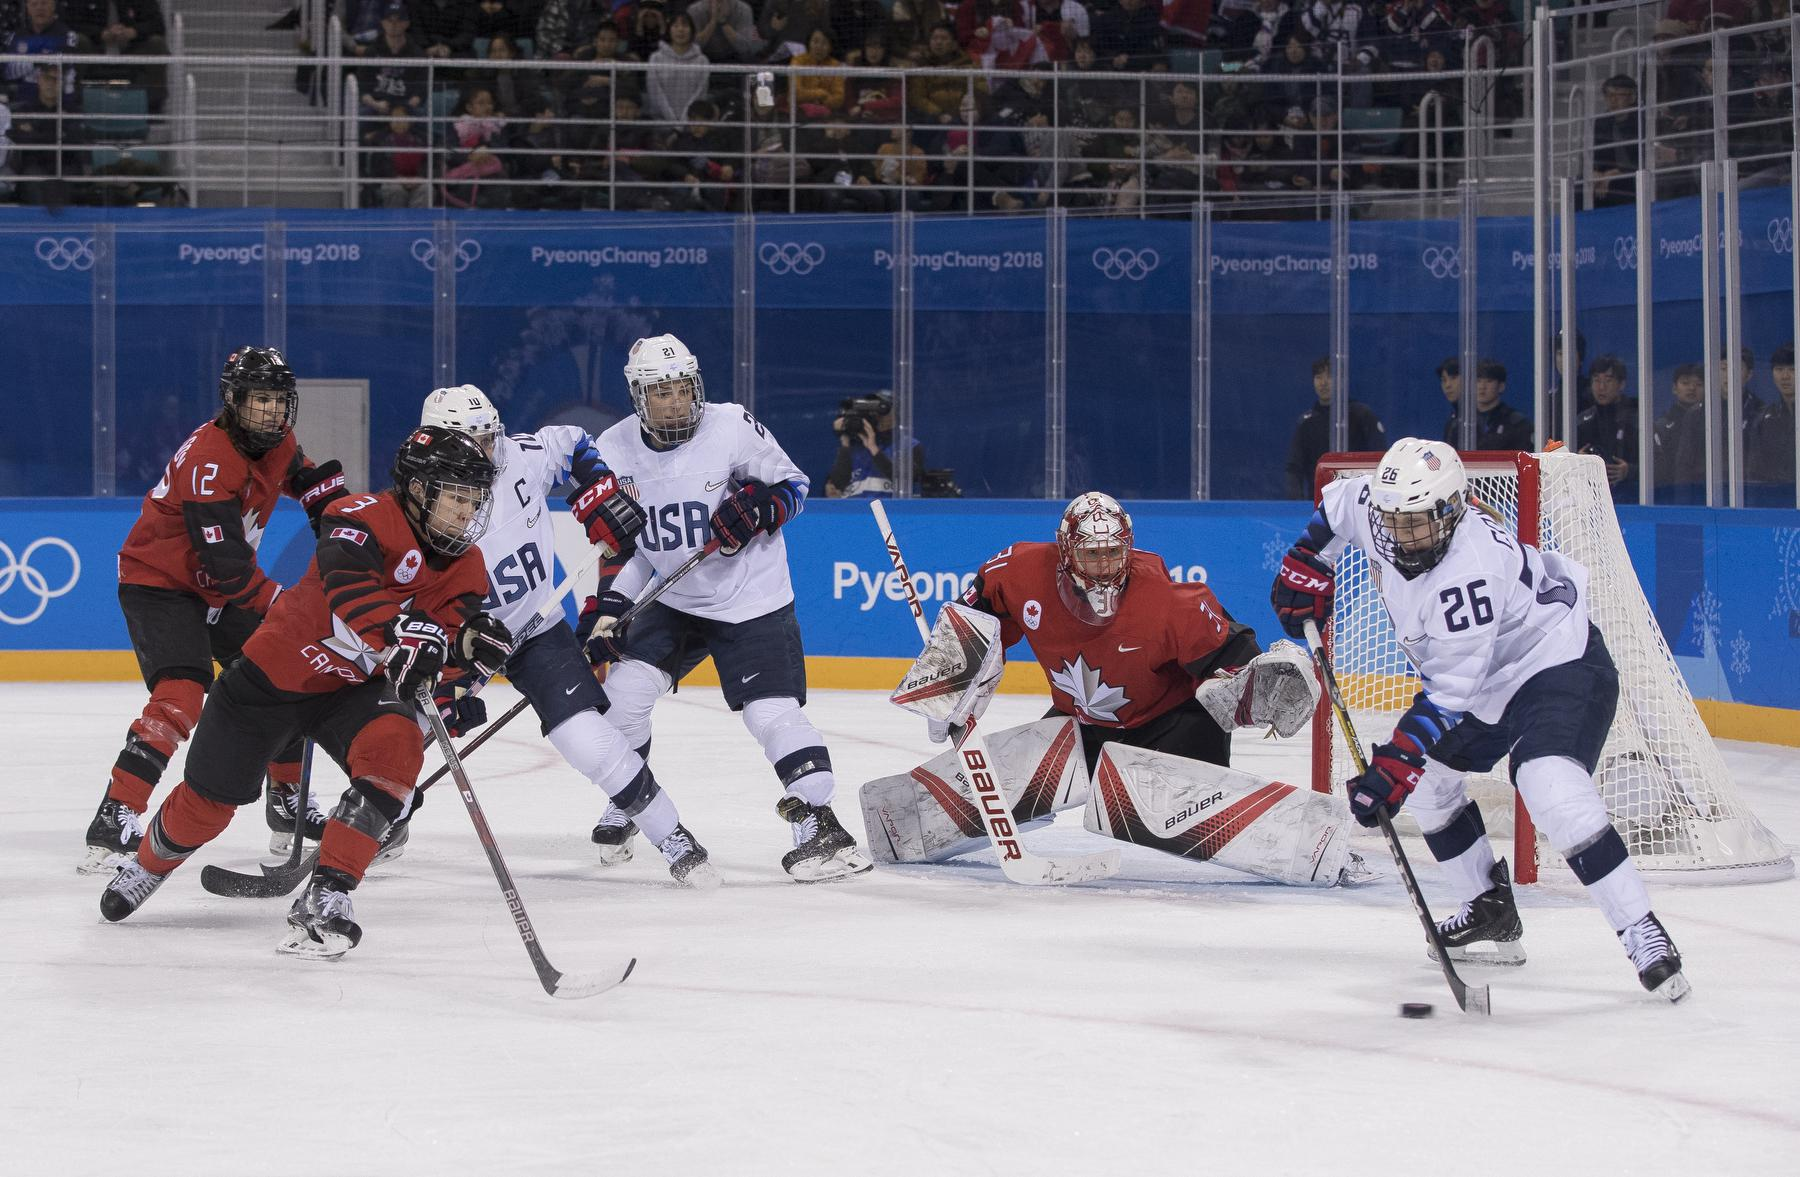 Bourque's offensive outburst leads Canada to 5-1 victory